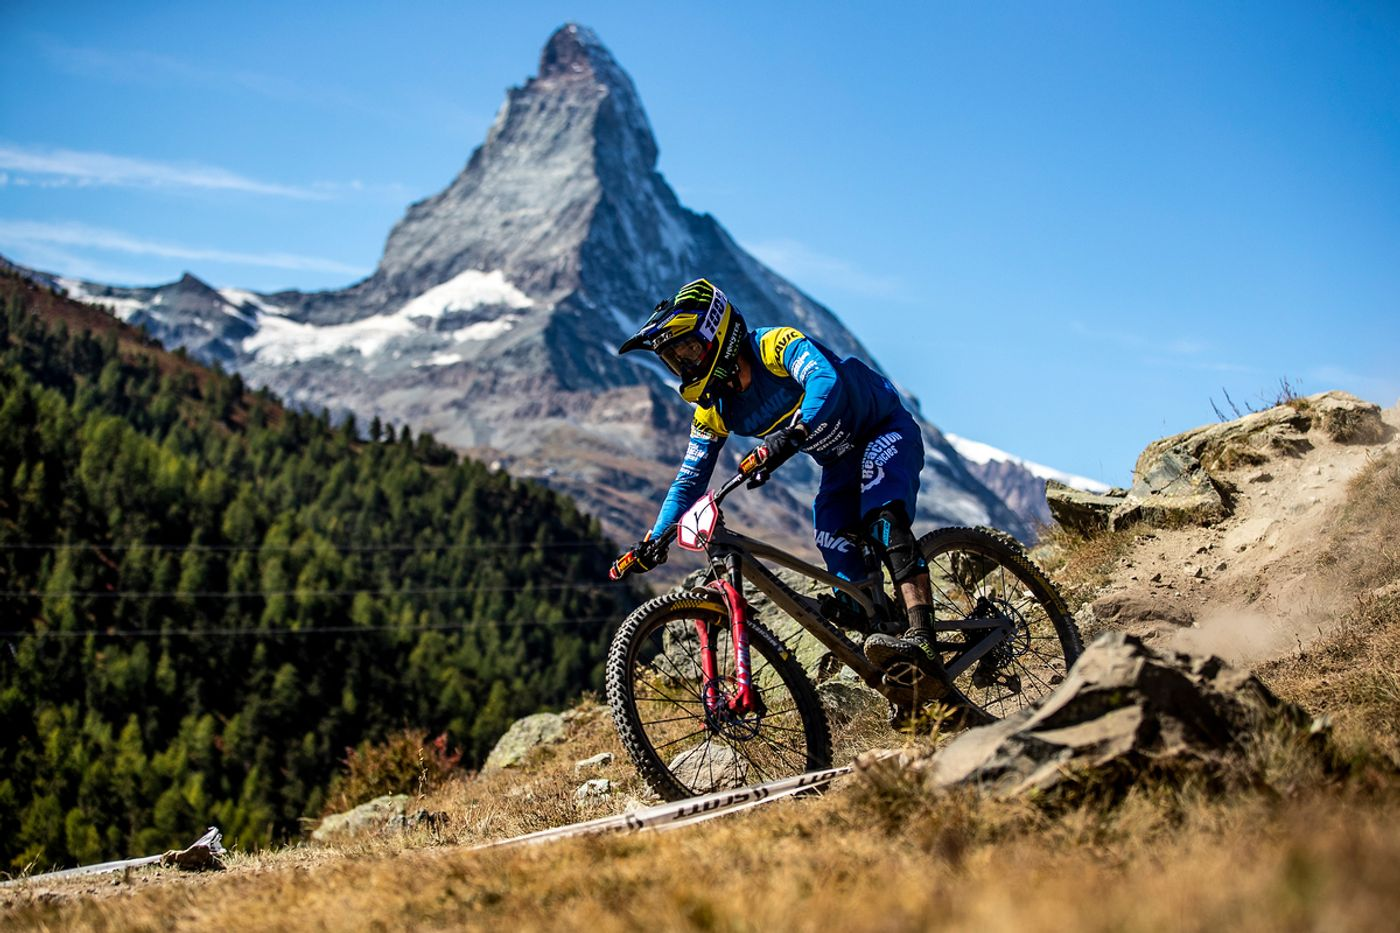 TRAILLOVE_Zermatt_EWS19_Copyright_TRAILLOVE_m1_7695